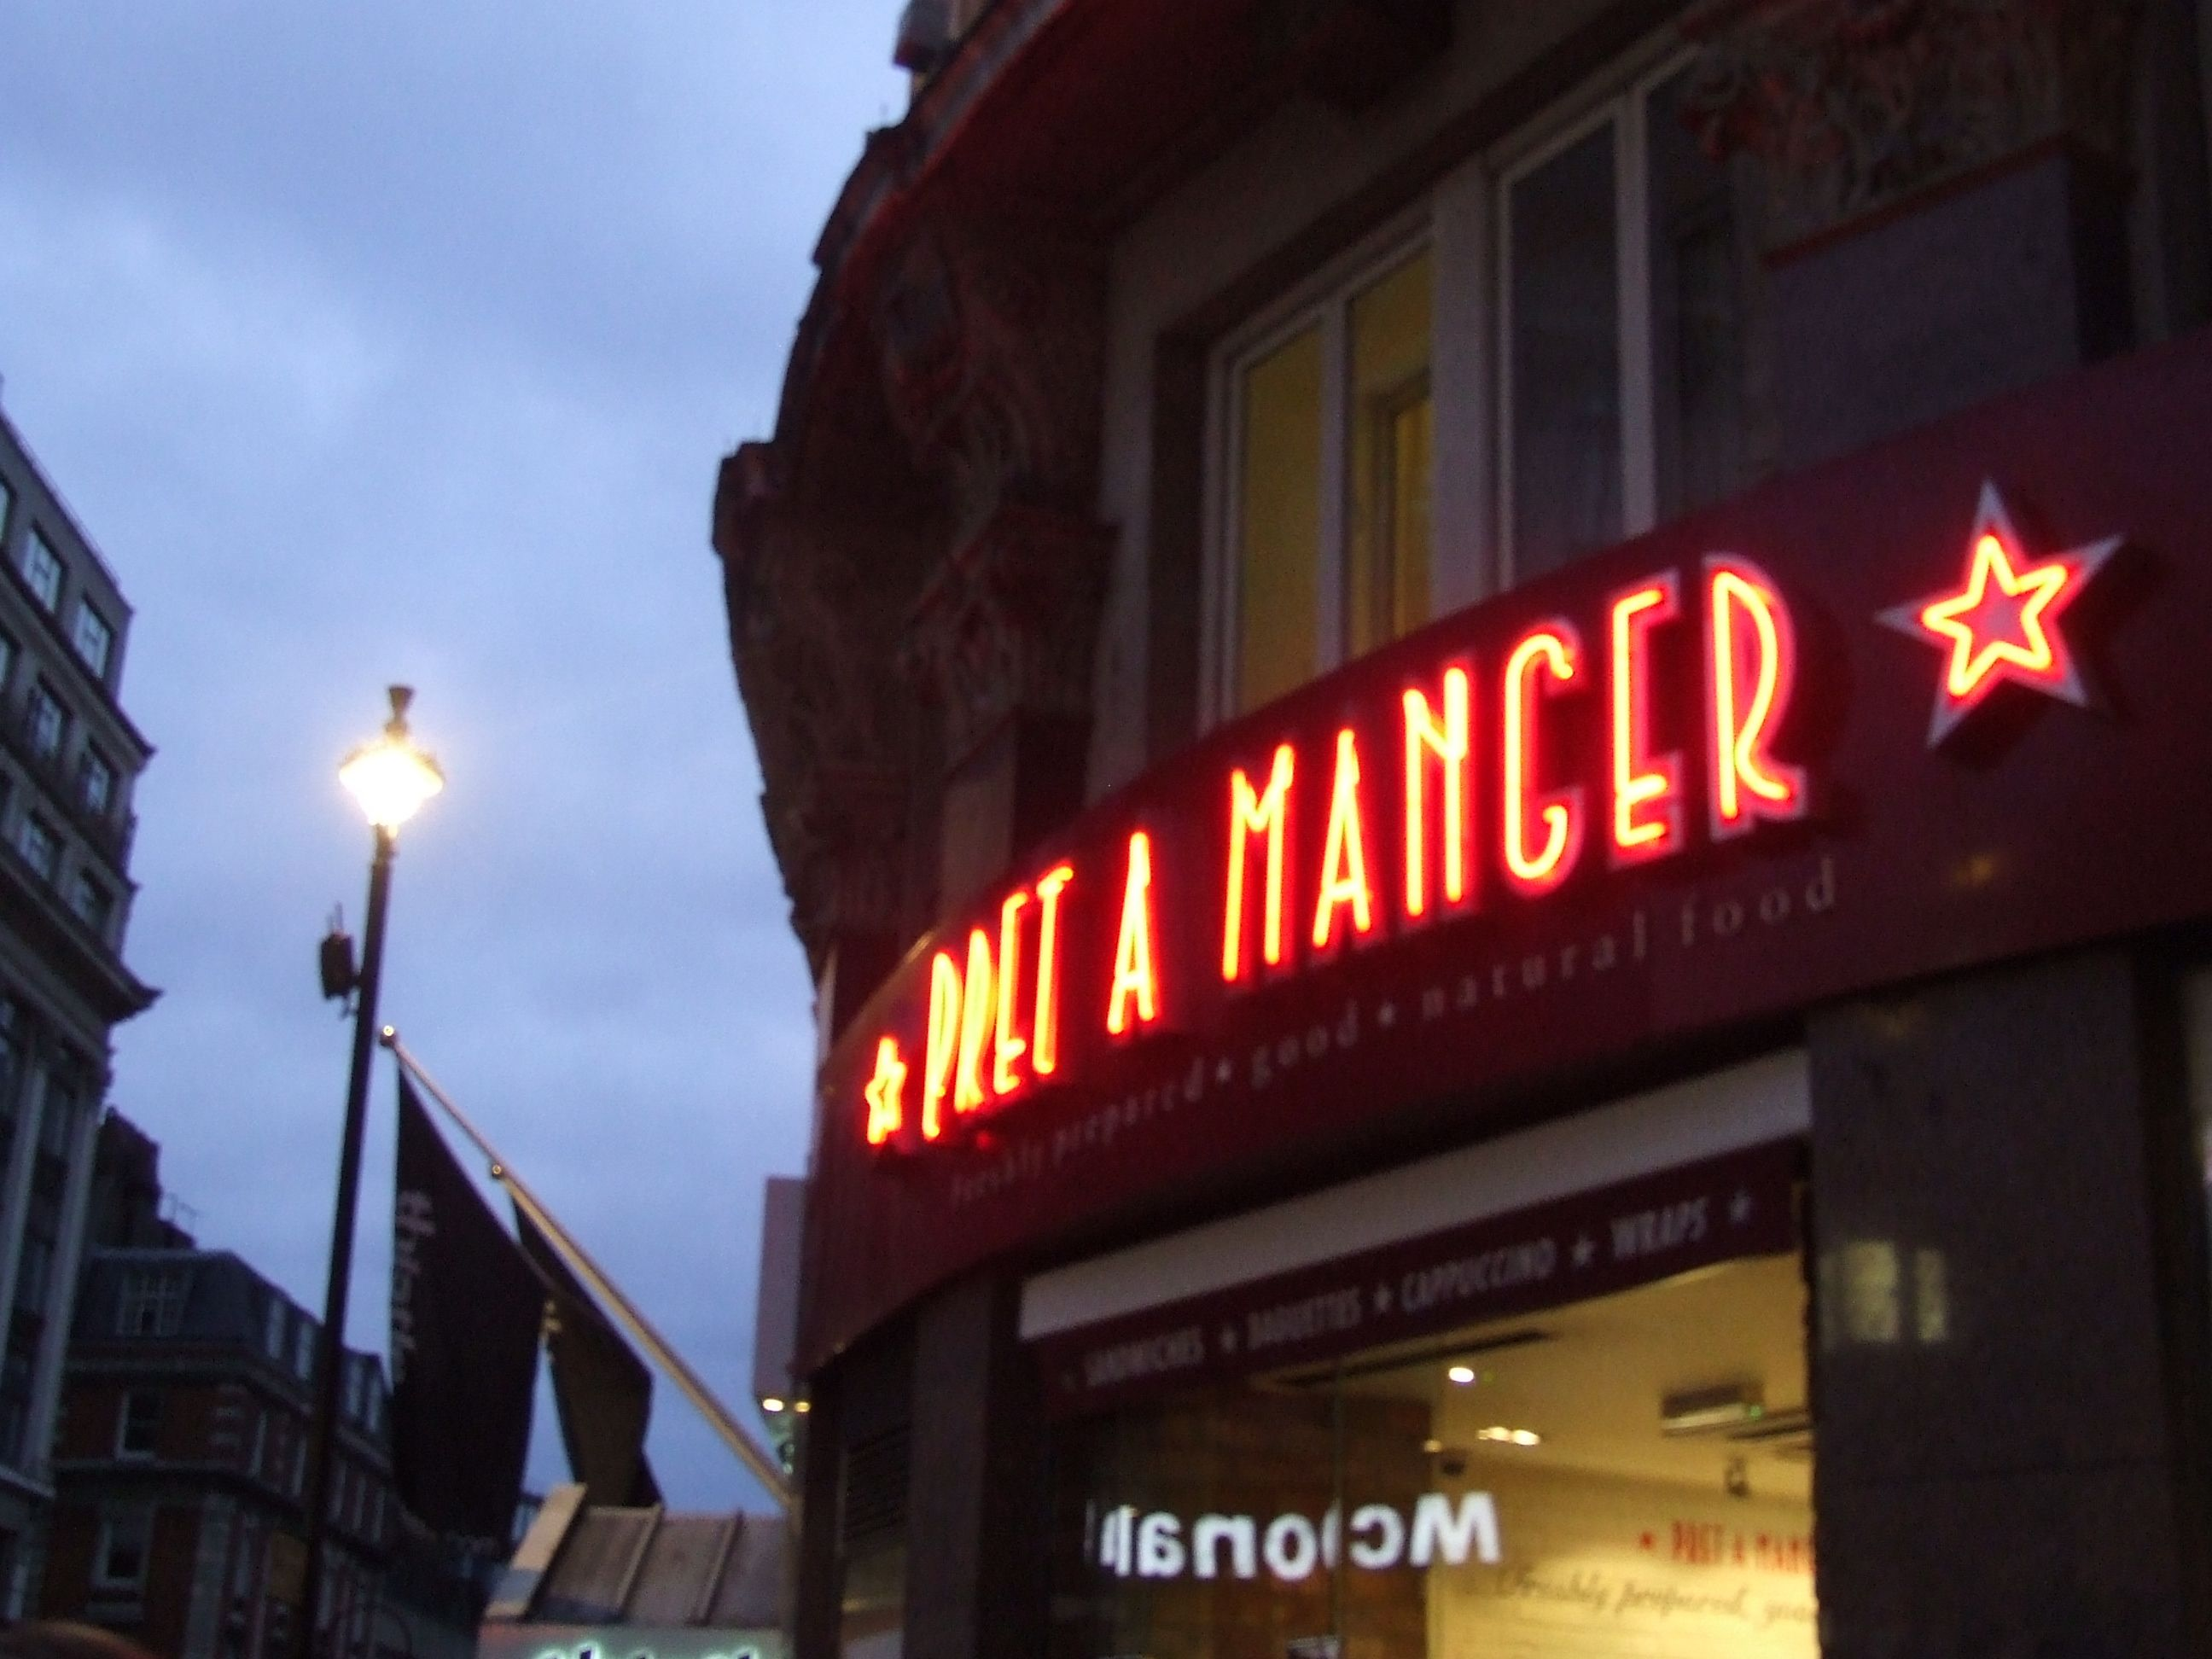 Pret-a-Manger is a sandwich shop that I frequent very frequently while in London. I always get the Scottish Salmon sandwich and some light sea salt crisps.